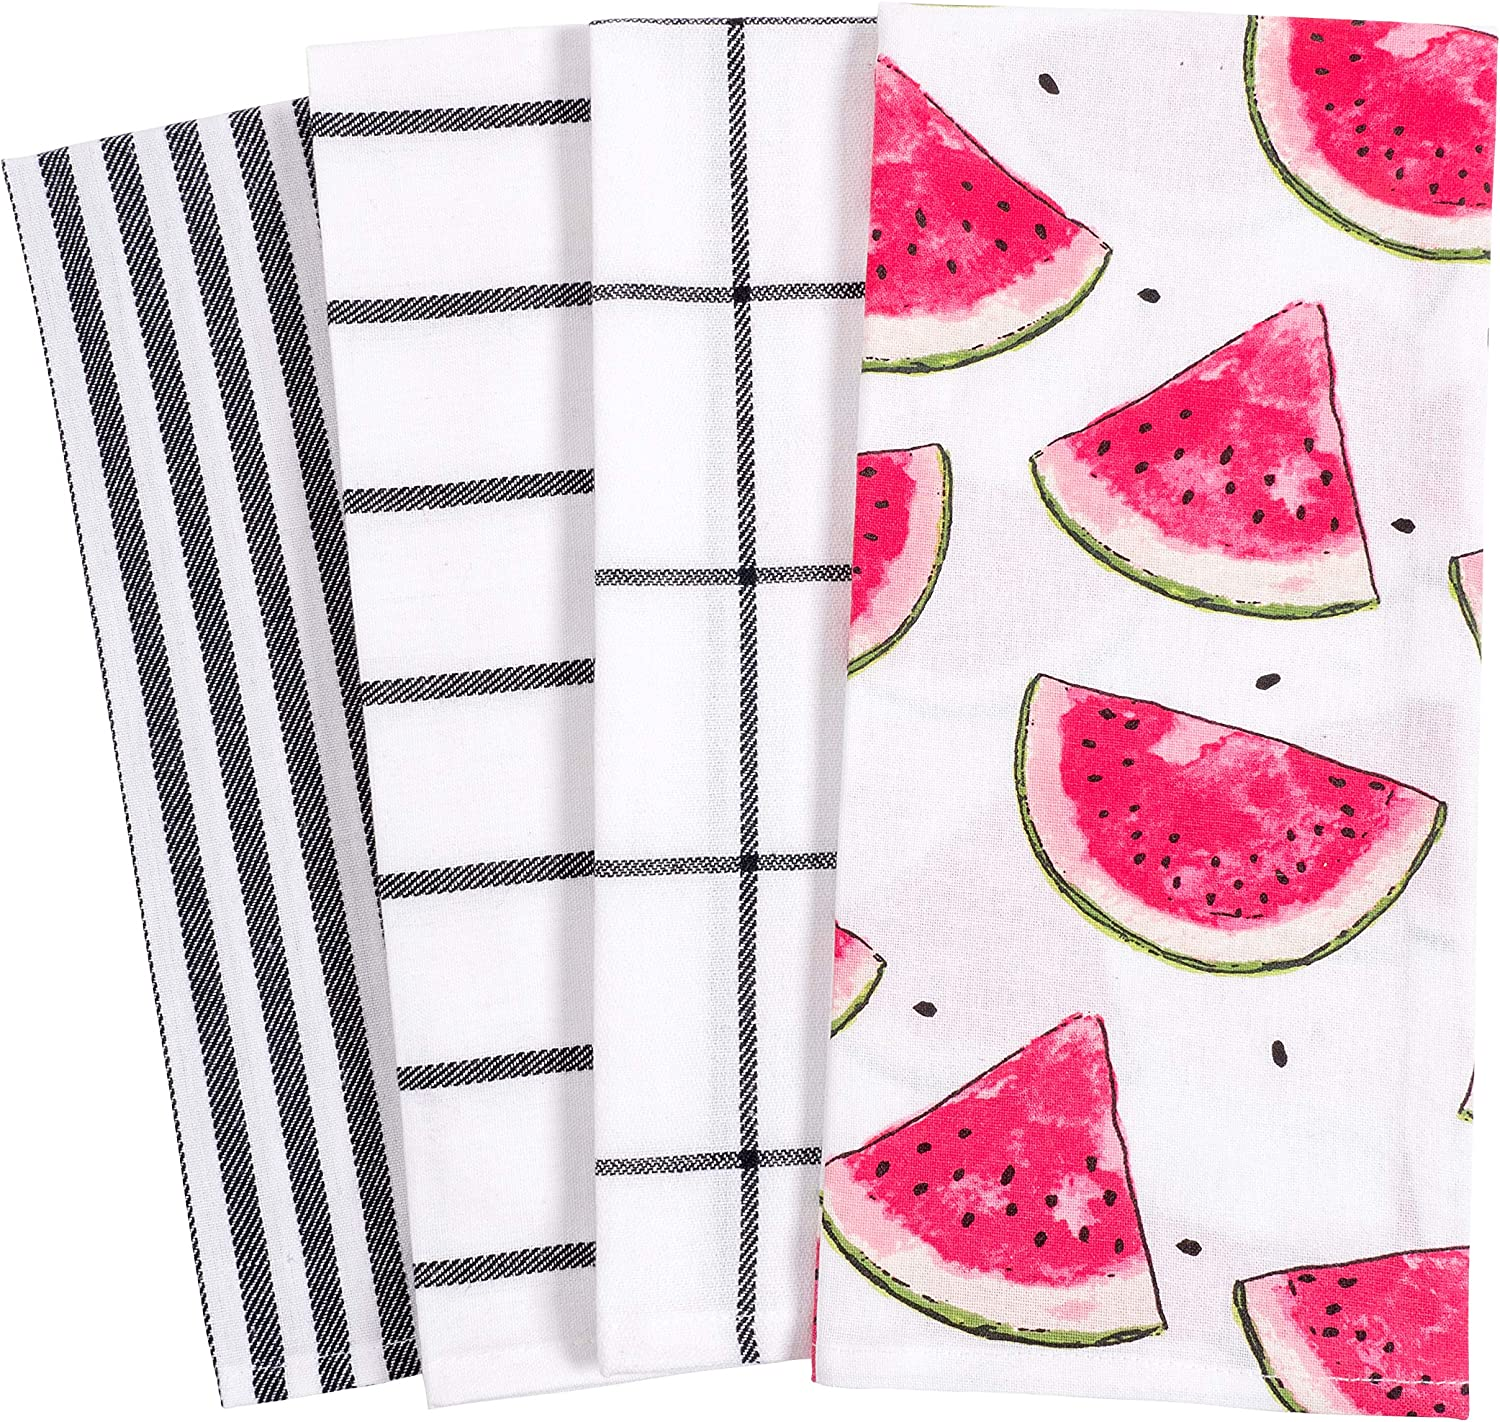 KAF Home Pantry Watermelon Slices All Over Kitchen Dish Towel Set of 4, 100-Percent Cotton, 18 x 28-inch